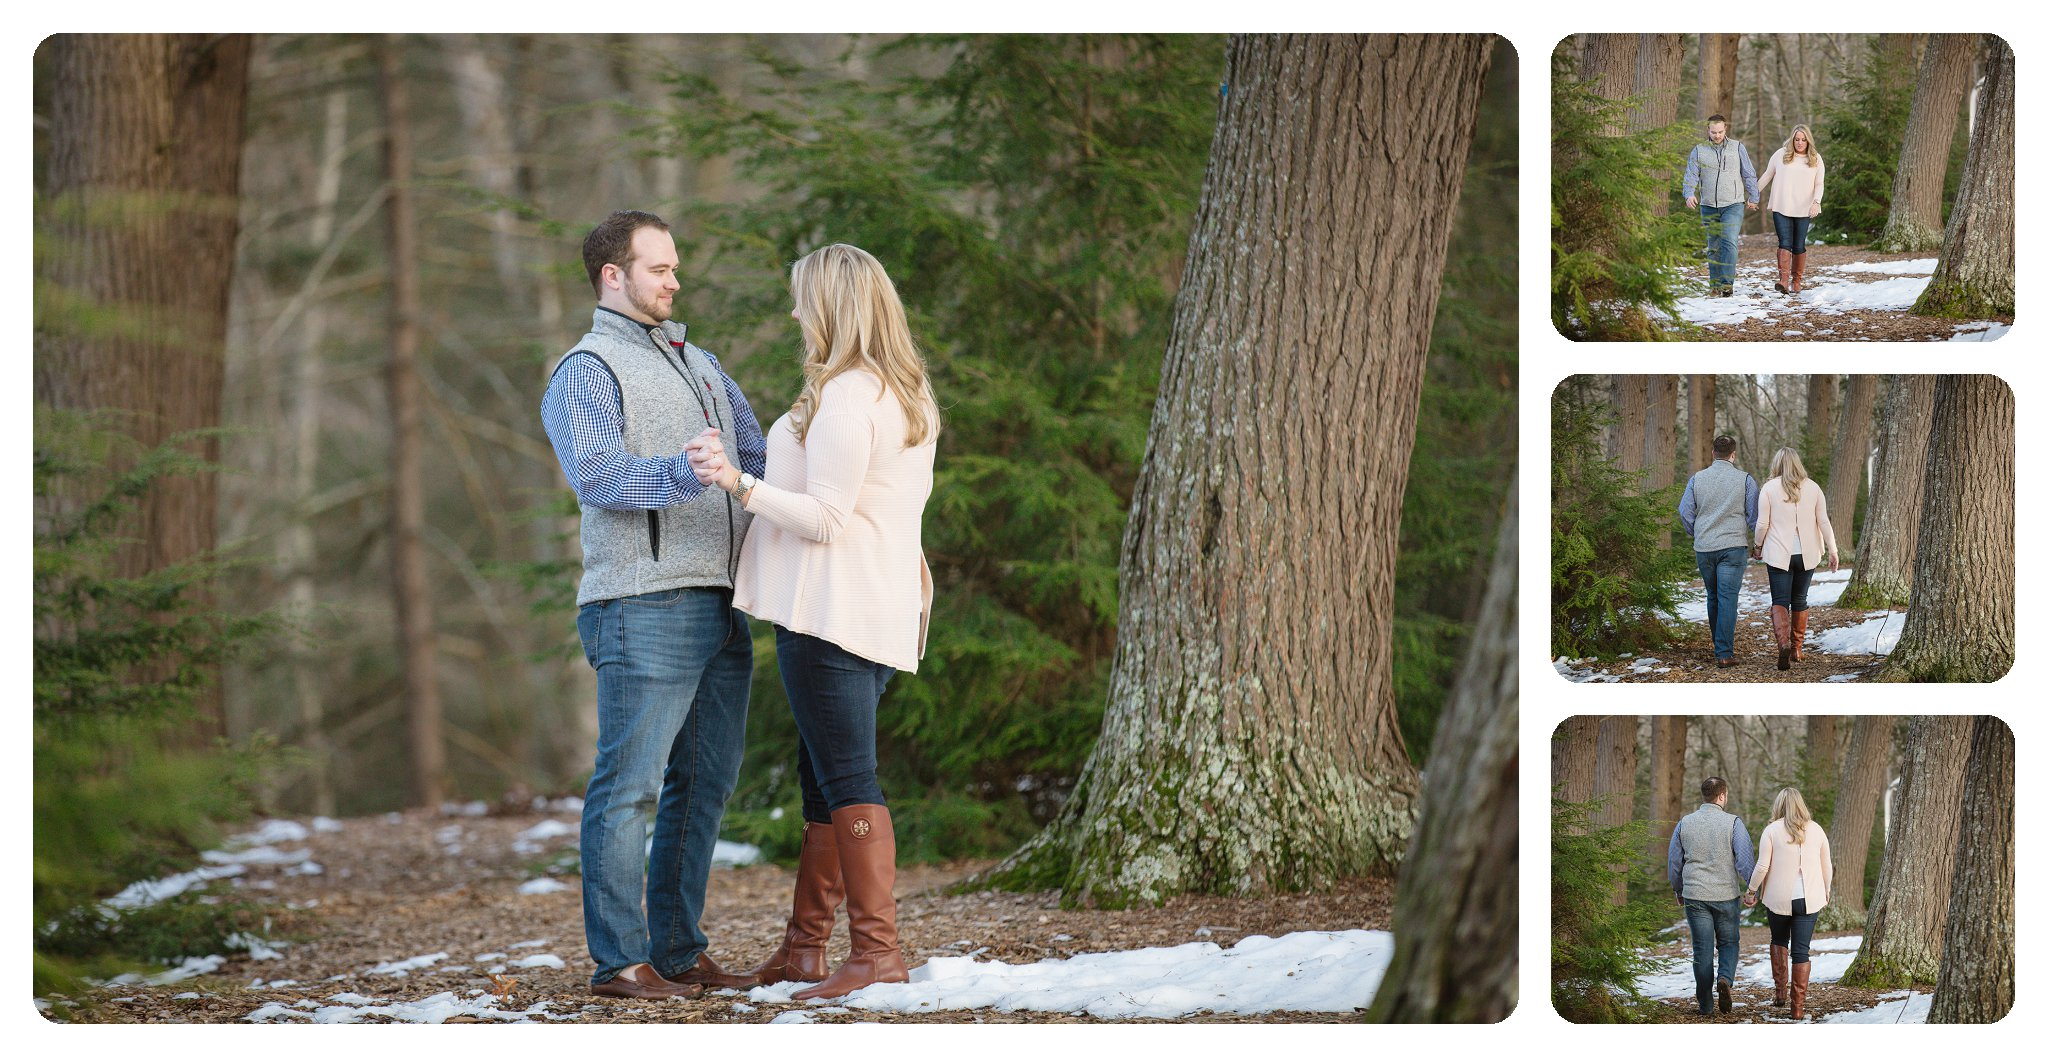 Surprise proposal at Biltmore Estate in Asheville NC on Diana Hill - 5